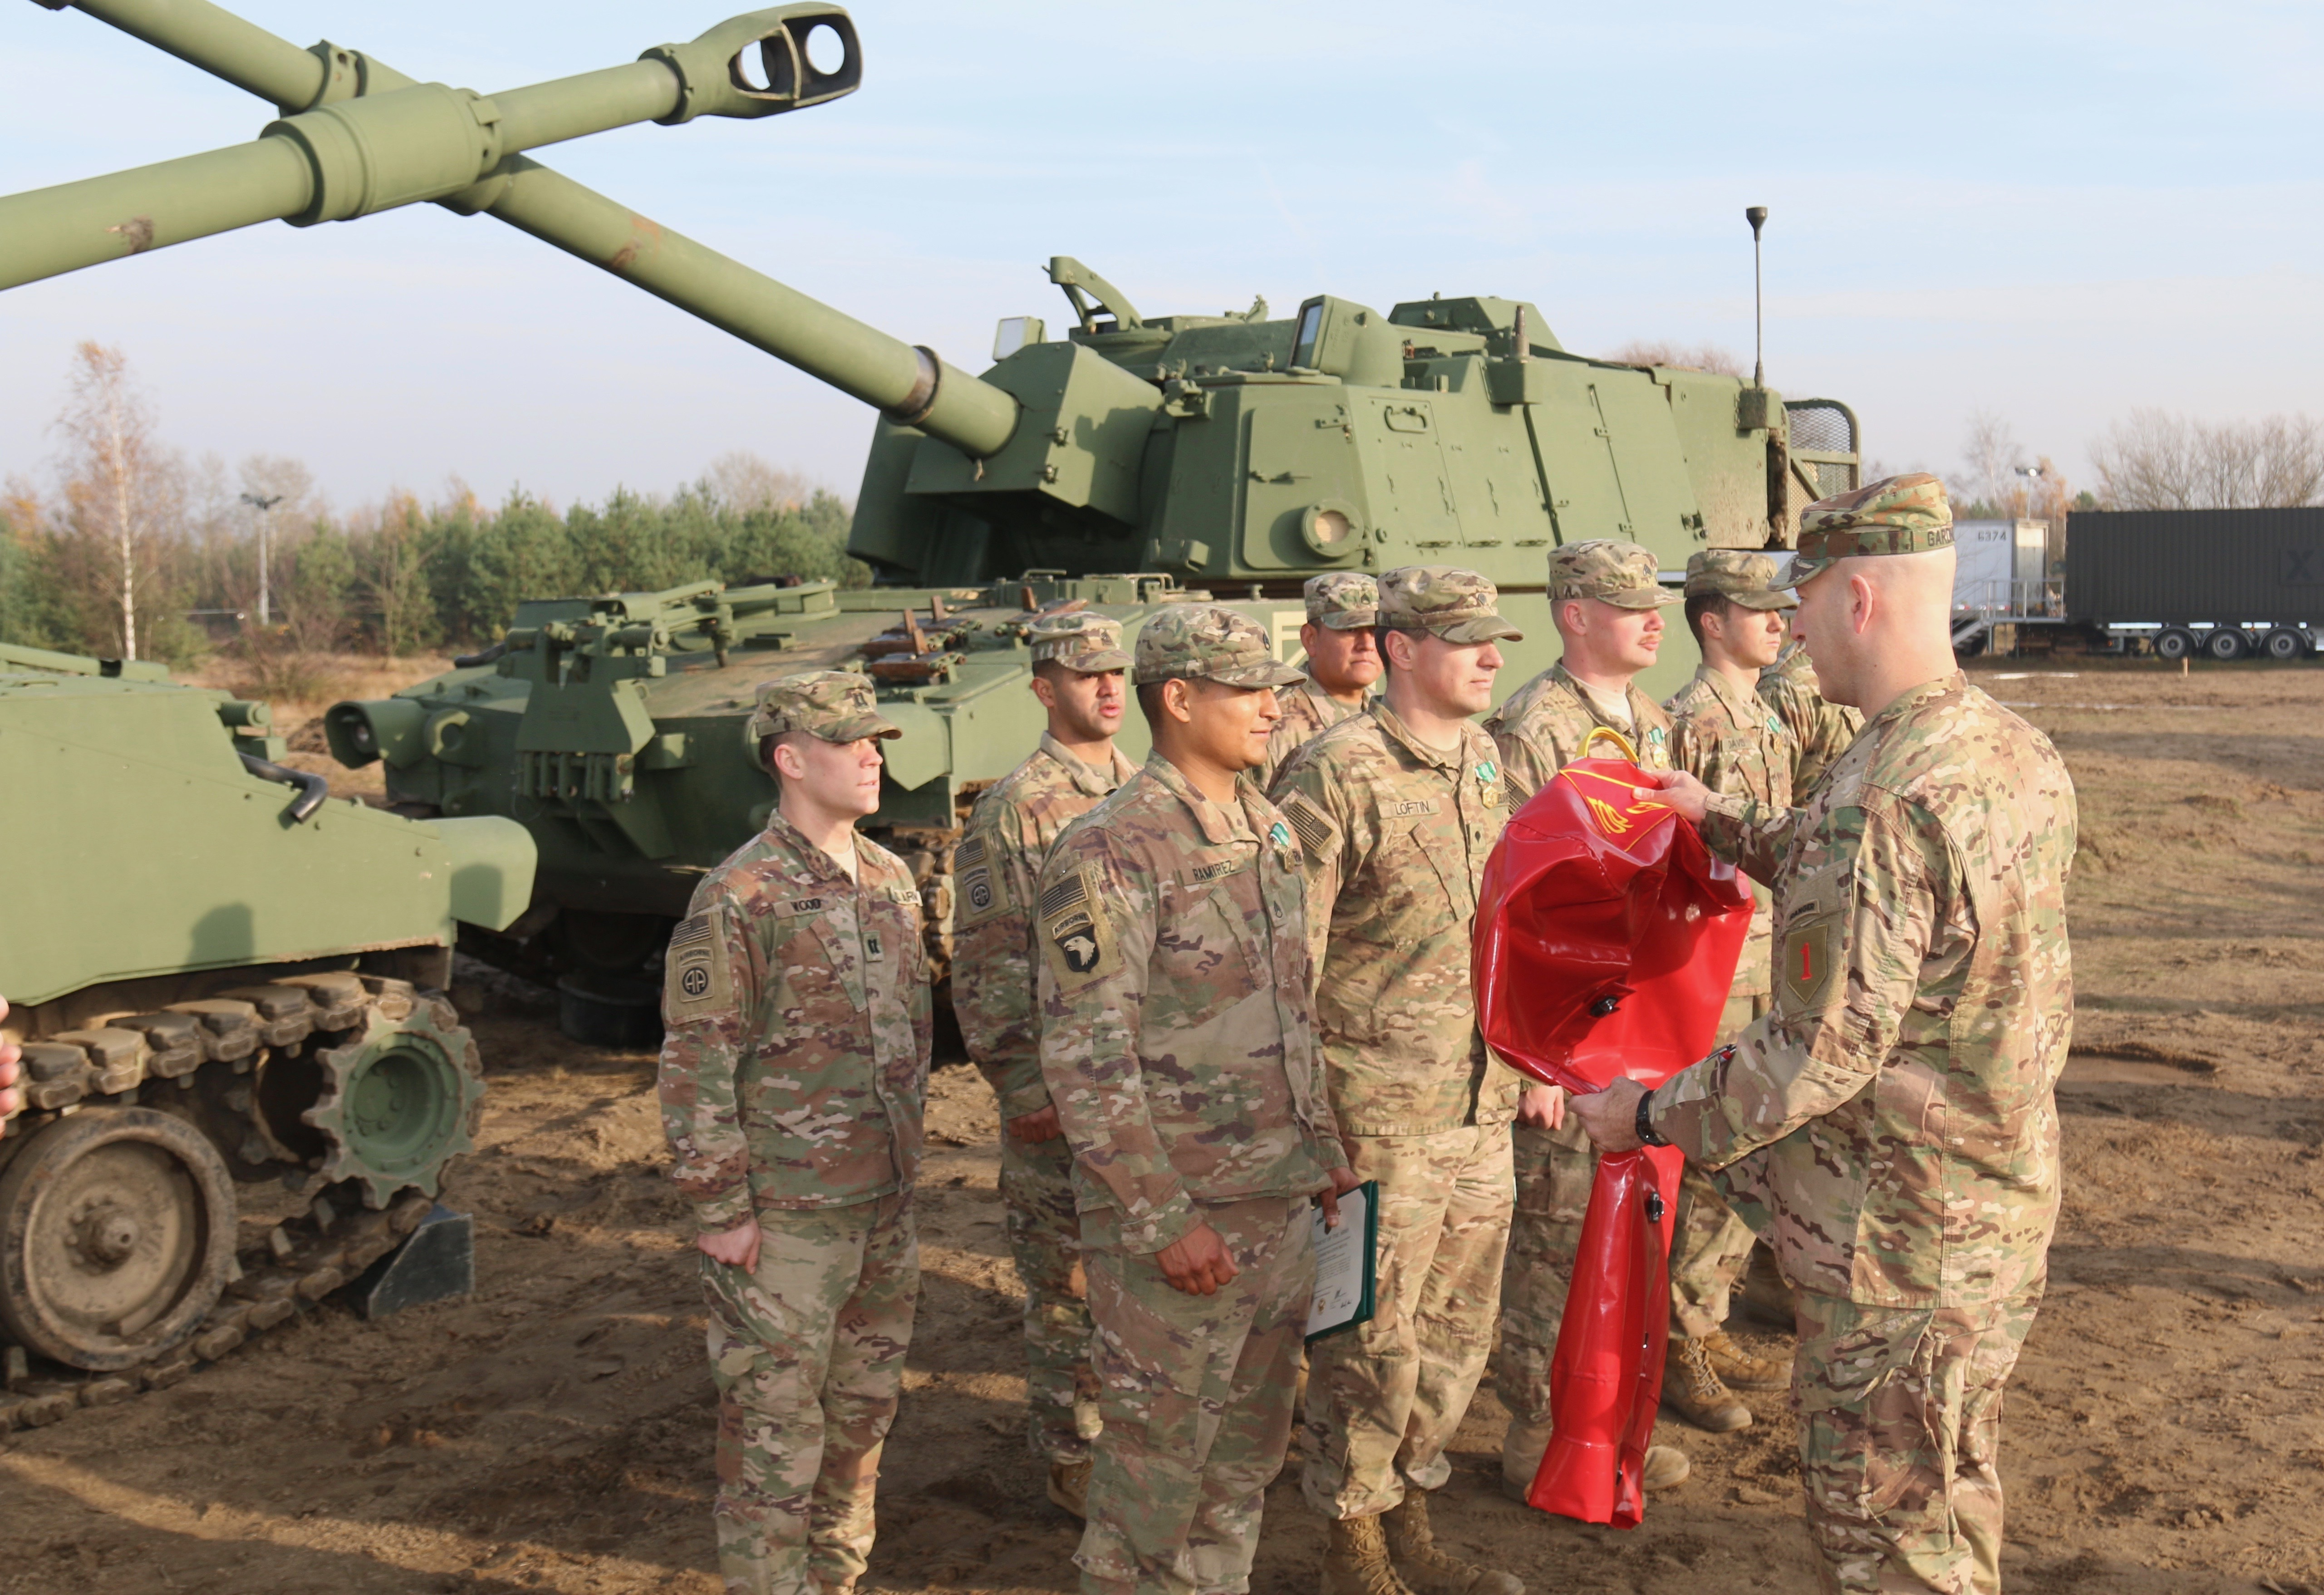 TORUN, Poland—Soldiers from 1st Battalion, 7th Field Artillery Regiment, 'Lightning Battalion,' 2nd Armored Brigade Combat Team, 1st Infantry Division, receive a special muzzle cover from Commander, Col. David Gardner, 2nd ABCT, for winning the Top Gun competition, Nov. 23 in Torun, Poland. Lightning Battalion conducted a 'Top Gun/Top FDC' competition, Nov. 19-23, to determine the best artillery gun crew and fire direction center in the battalion. The event was designed to promote esprit de corps and sustain their readiness and ability to deliver timely and accurate fires. (Photo by Capt. Orlandon Howard)